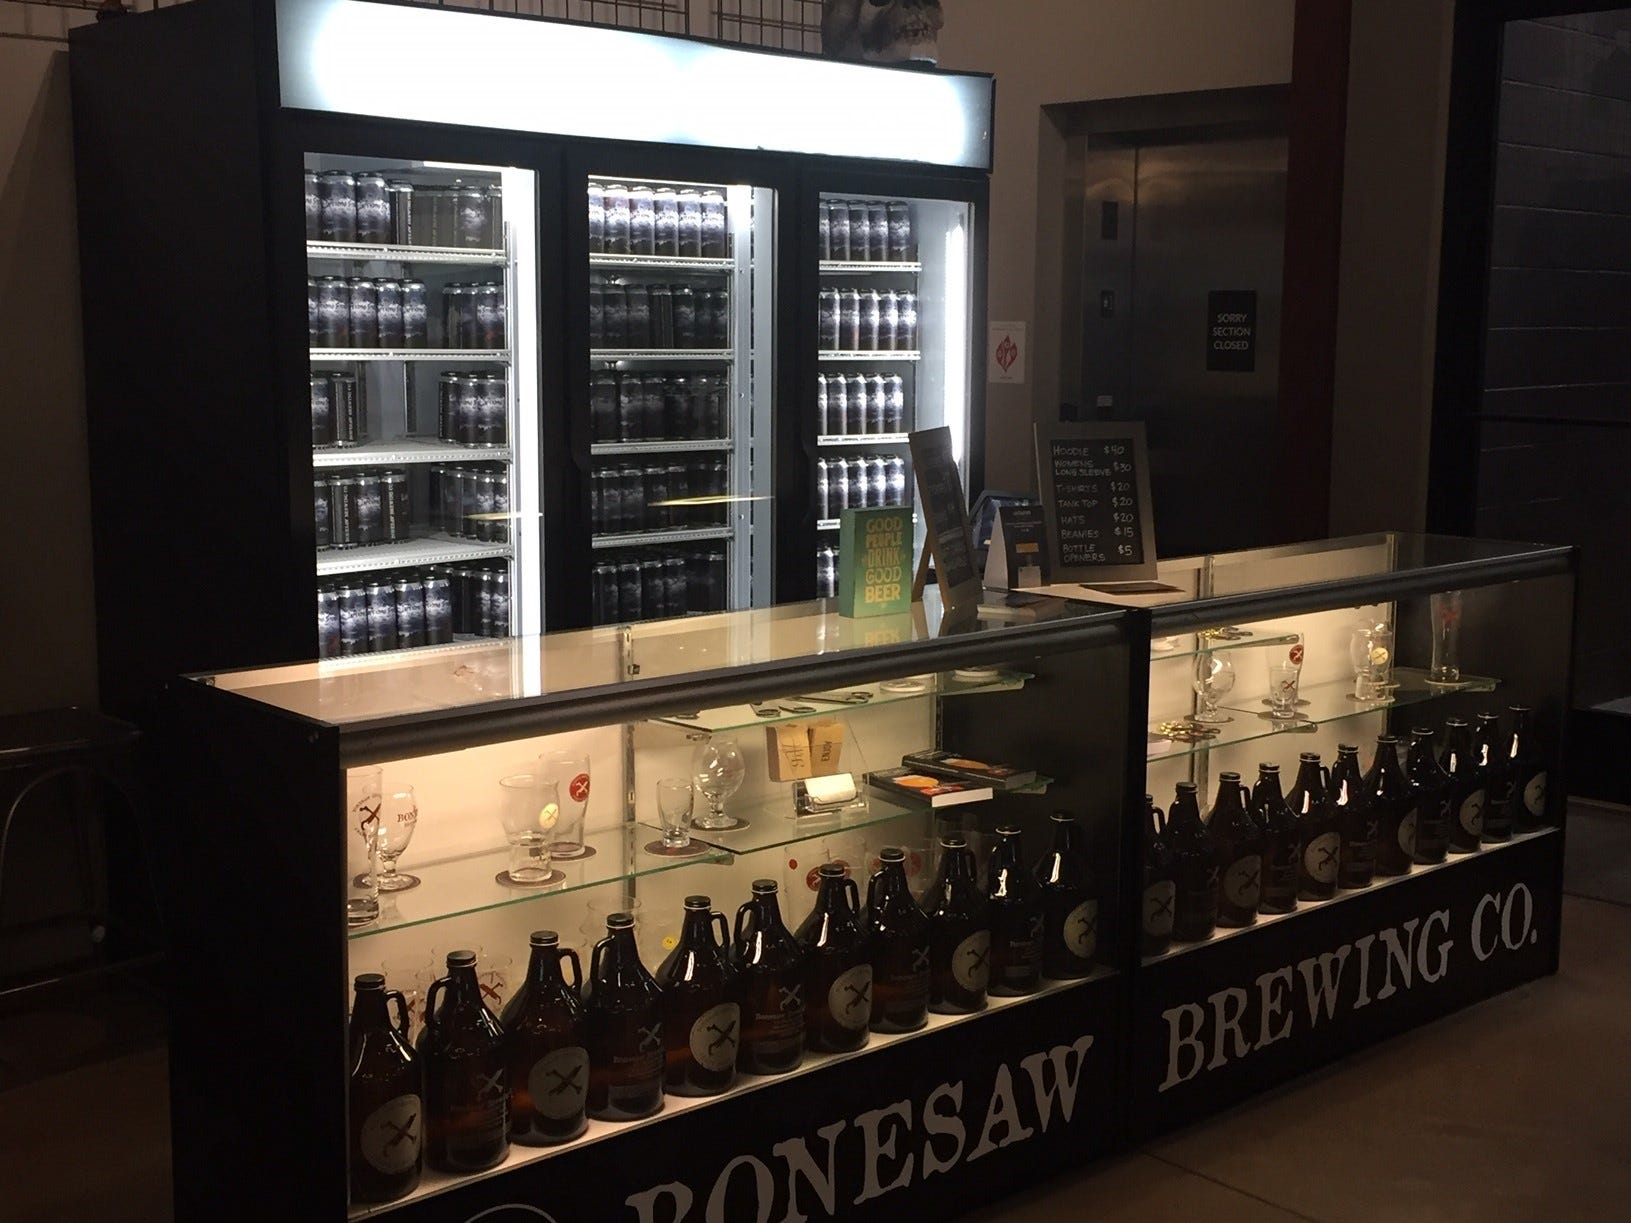 Cans, growlers, crowlers and Bonesaw Brewing Company merchandise such as glassware and T-shirts can be found in the tasting room.